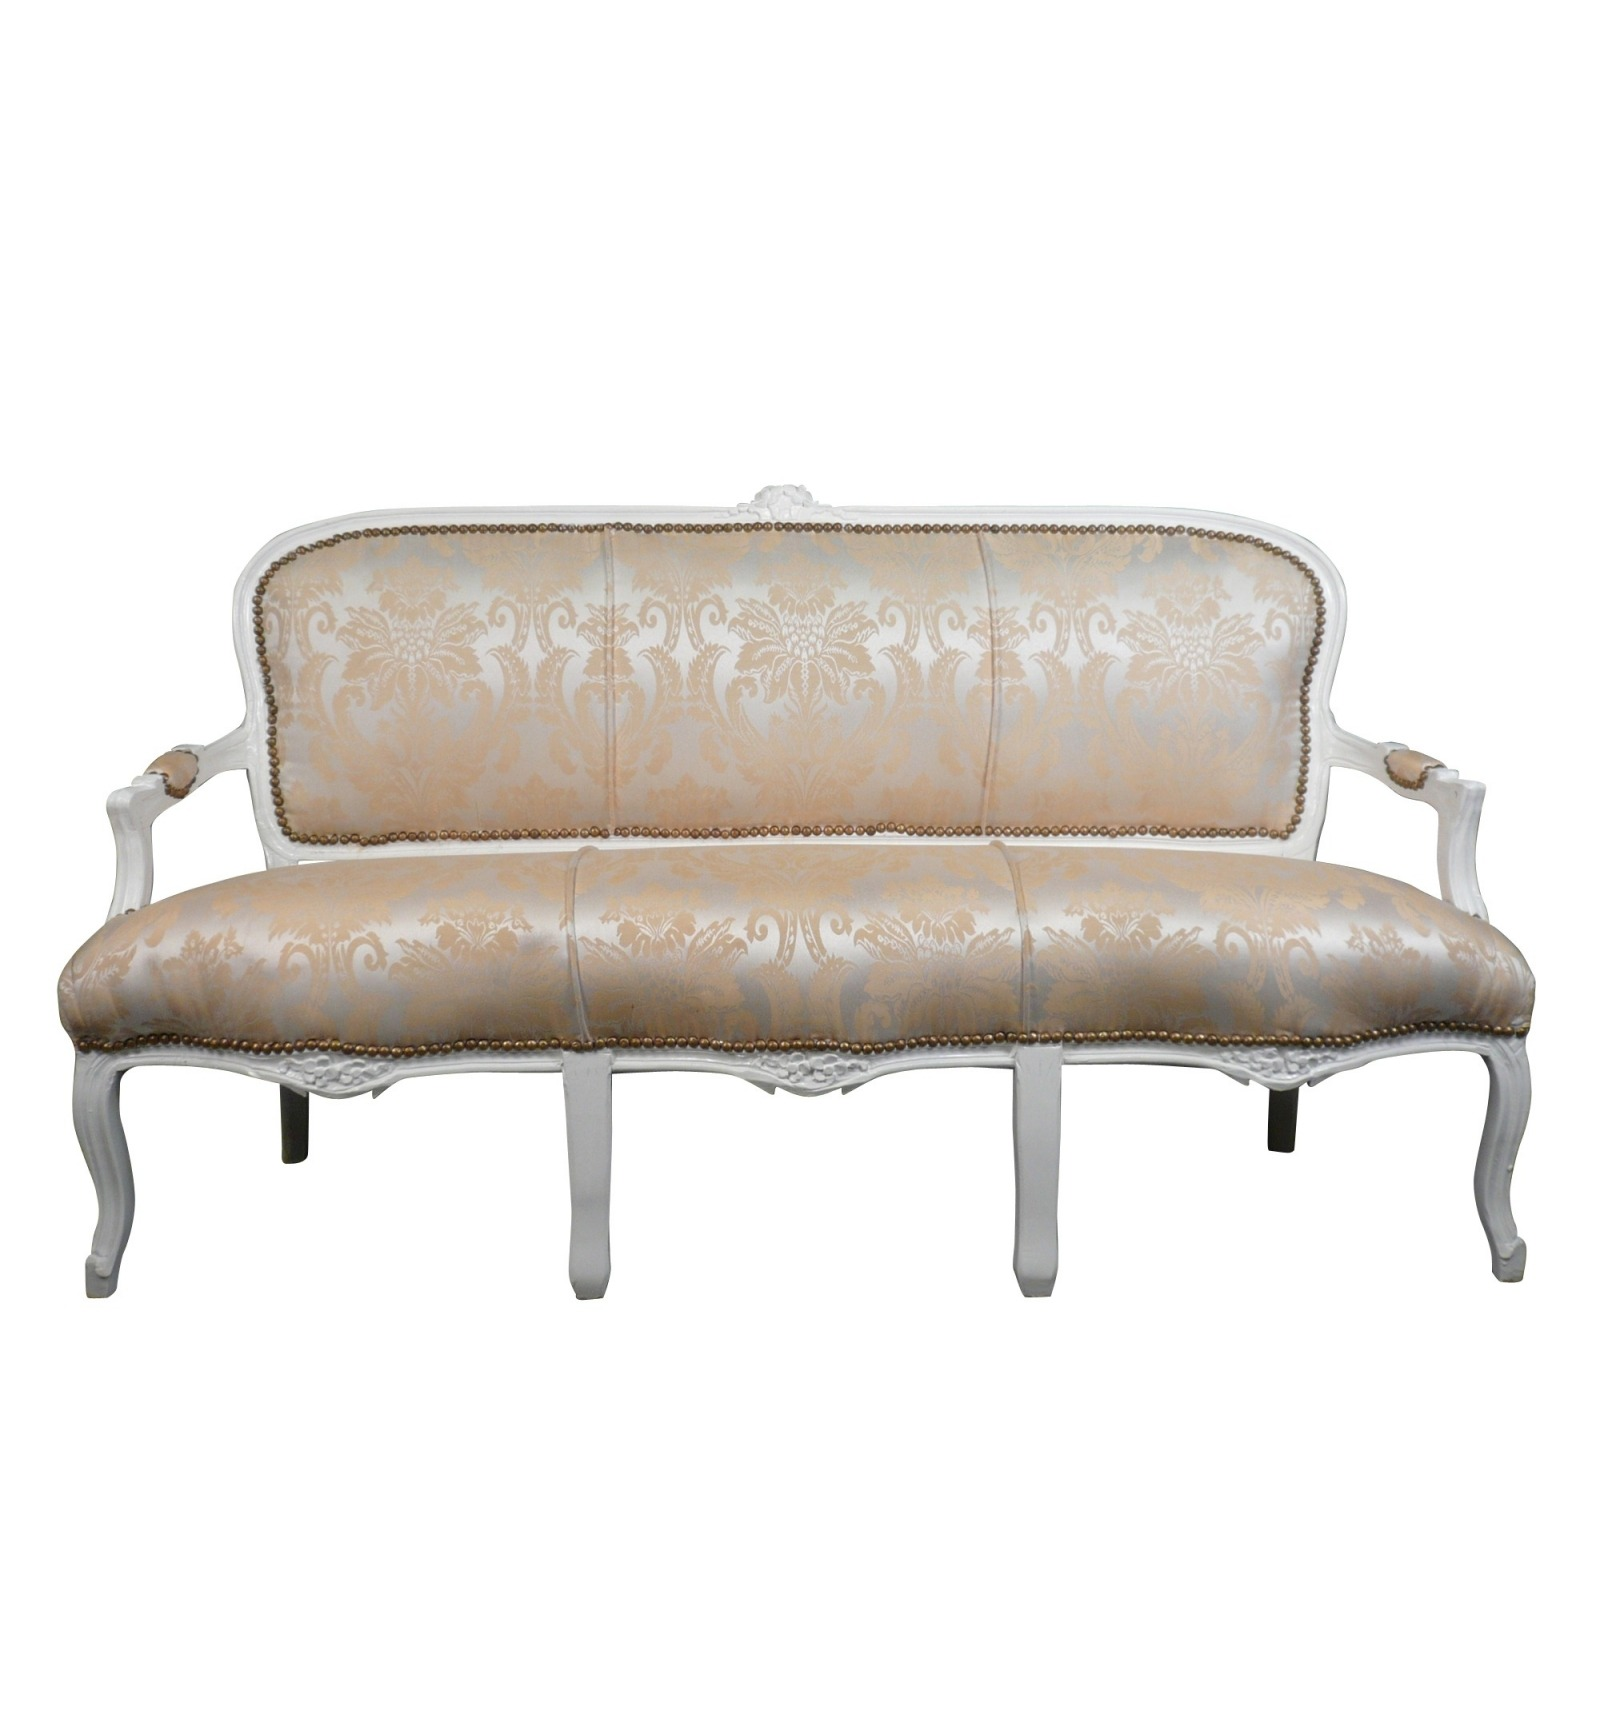 Sofa louis xv white wood and satin fabric for Canape style louis xv